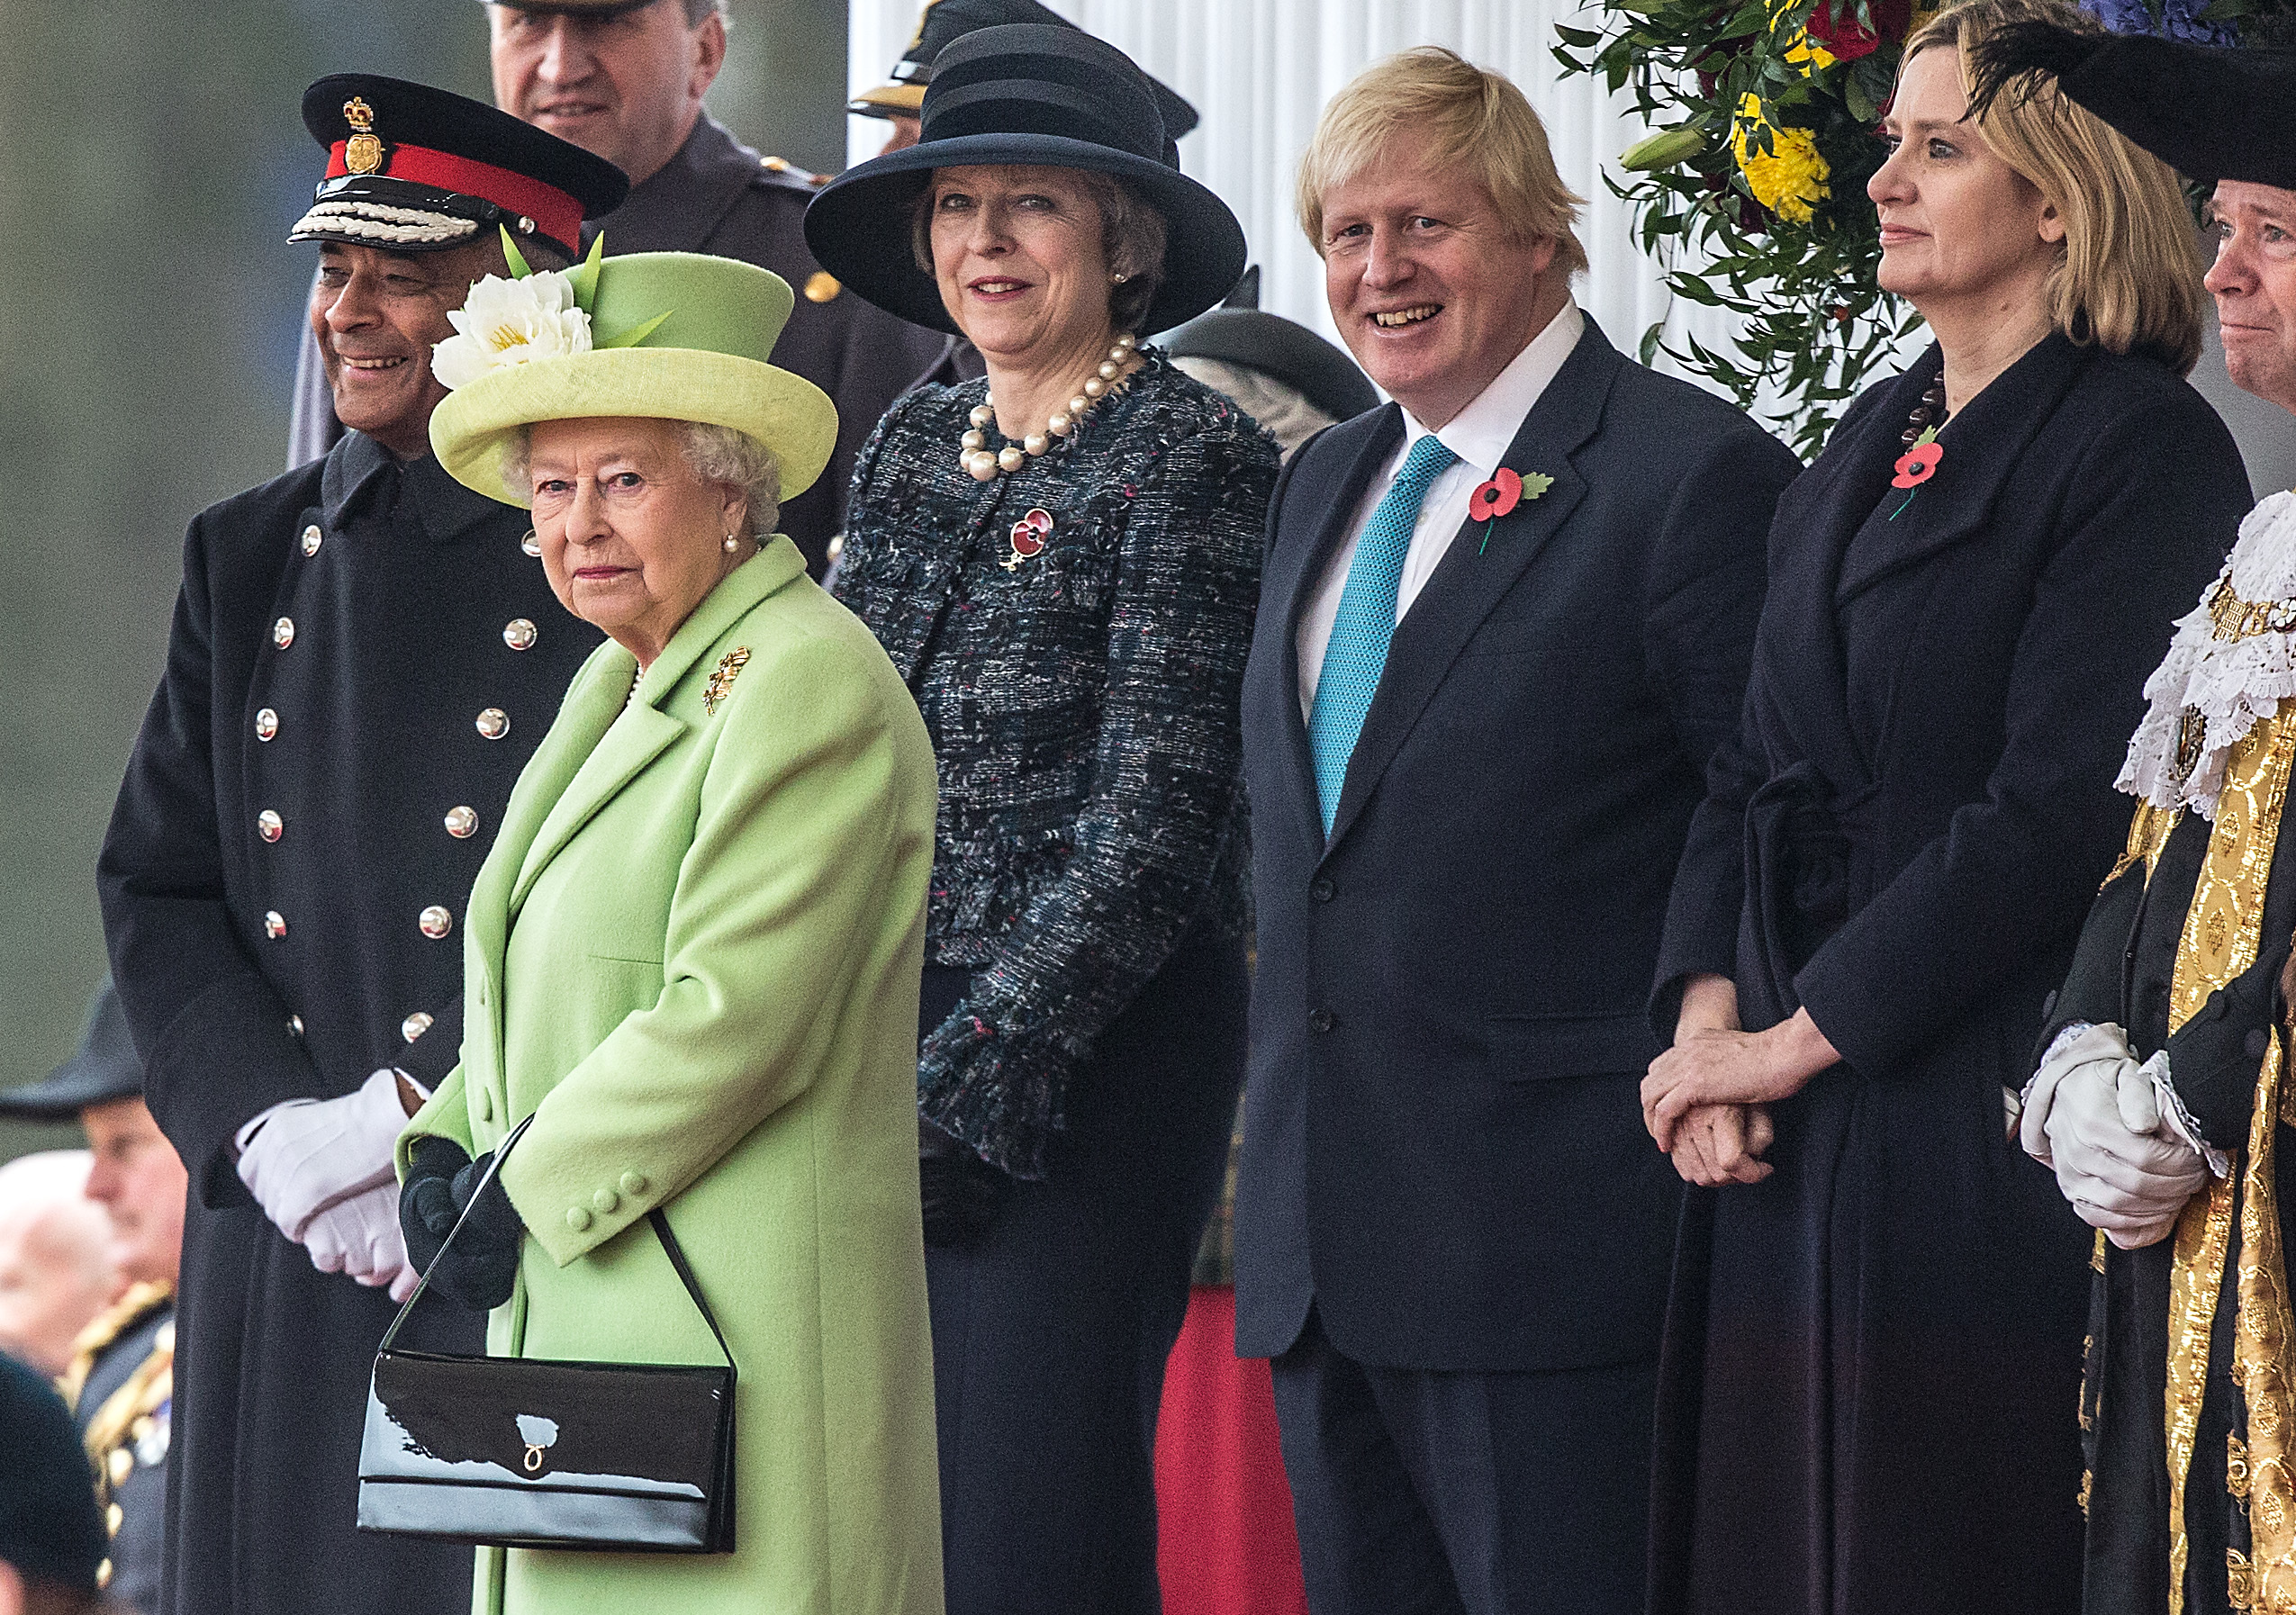 Queen Elizabeth II stands with the Prime Minister Theresa May, Foreign Secretary Boris Johnson and Home Secretary Amber Rudd (Richard Pohle - WPA Pool/Getty Images)